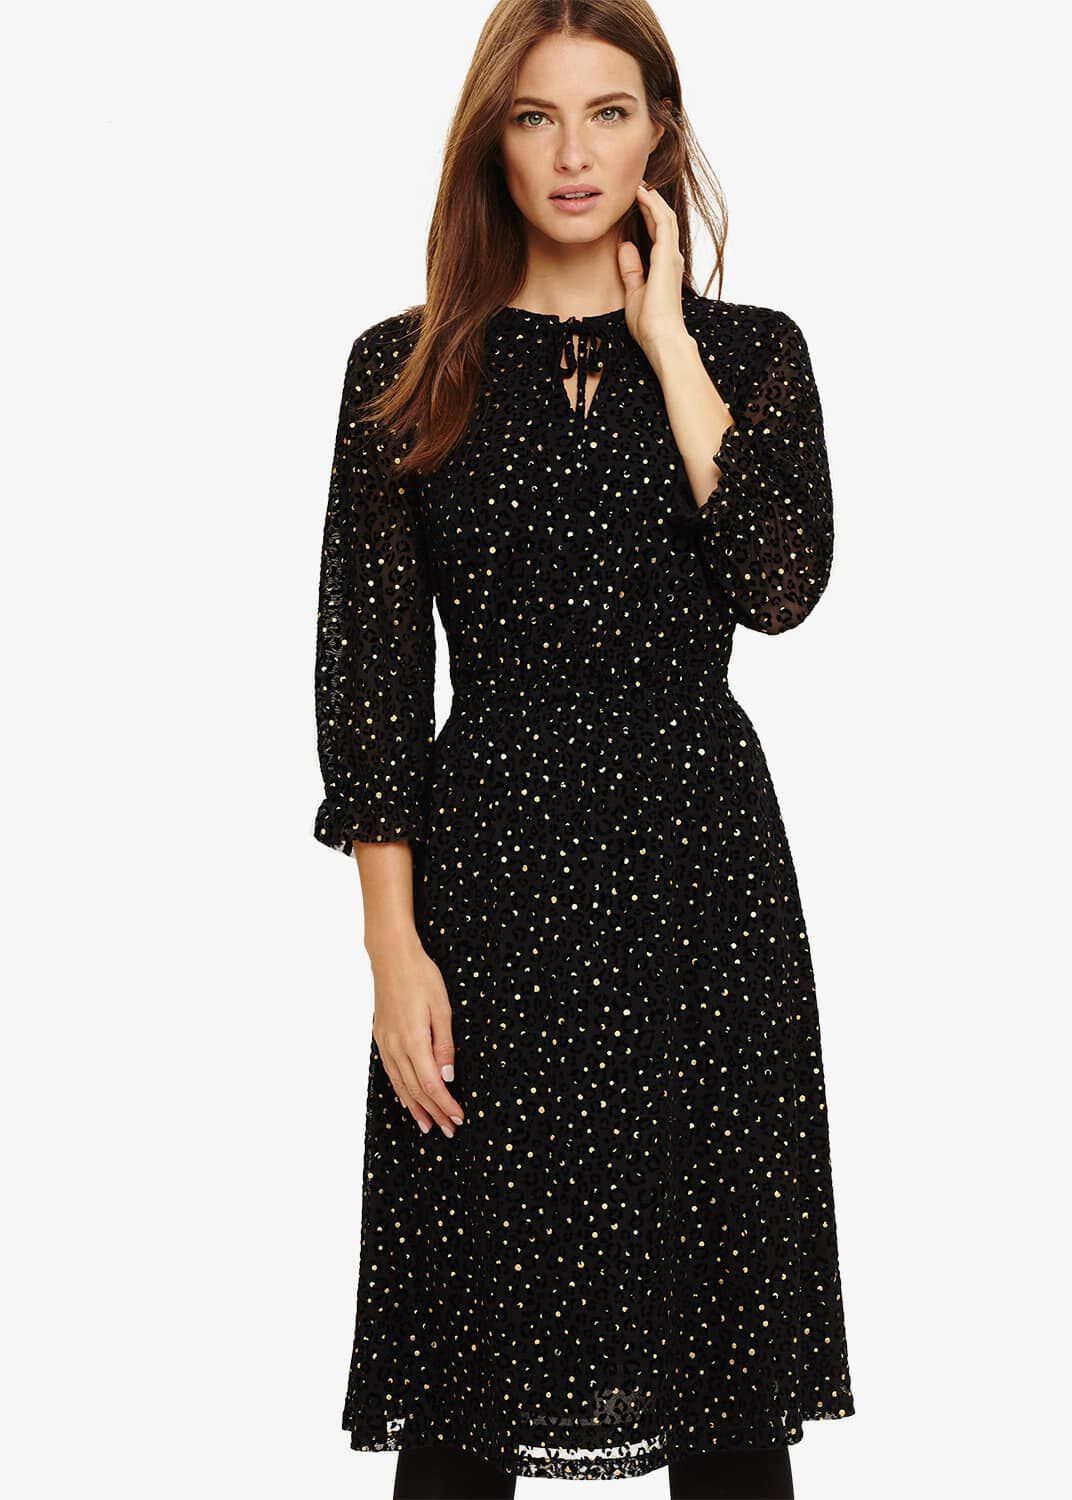 Phase Eight Francheska Flocked Midi Dress, Black, Fit & Flare